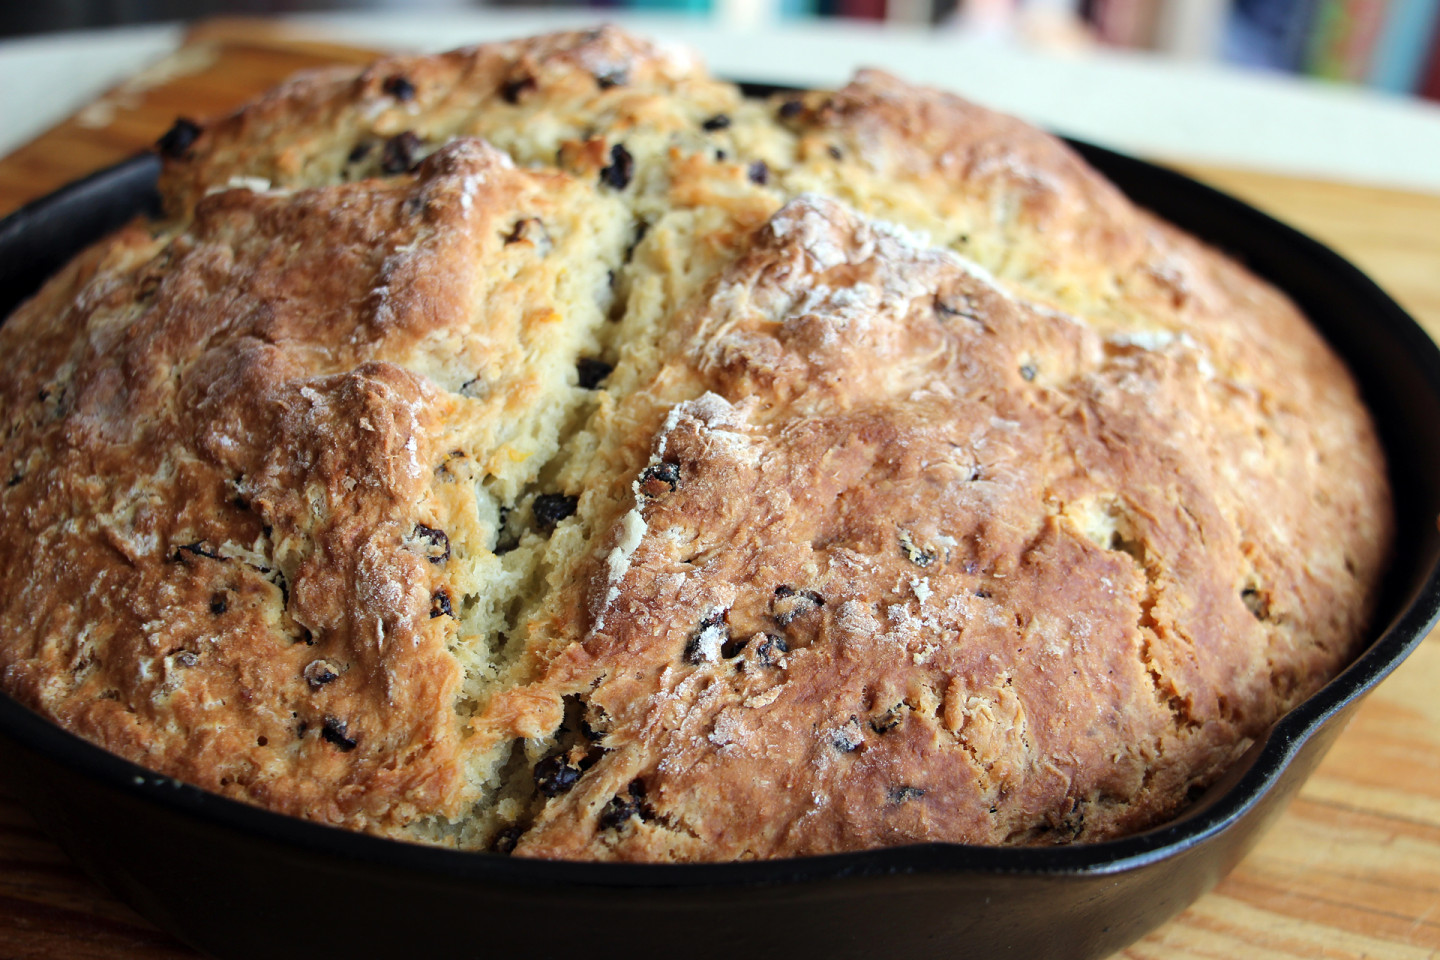 Easy to Make for St. Patrick's Day: Irish Soda Bread with Currants and Orange Zest